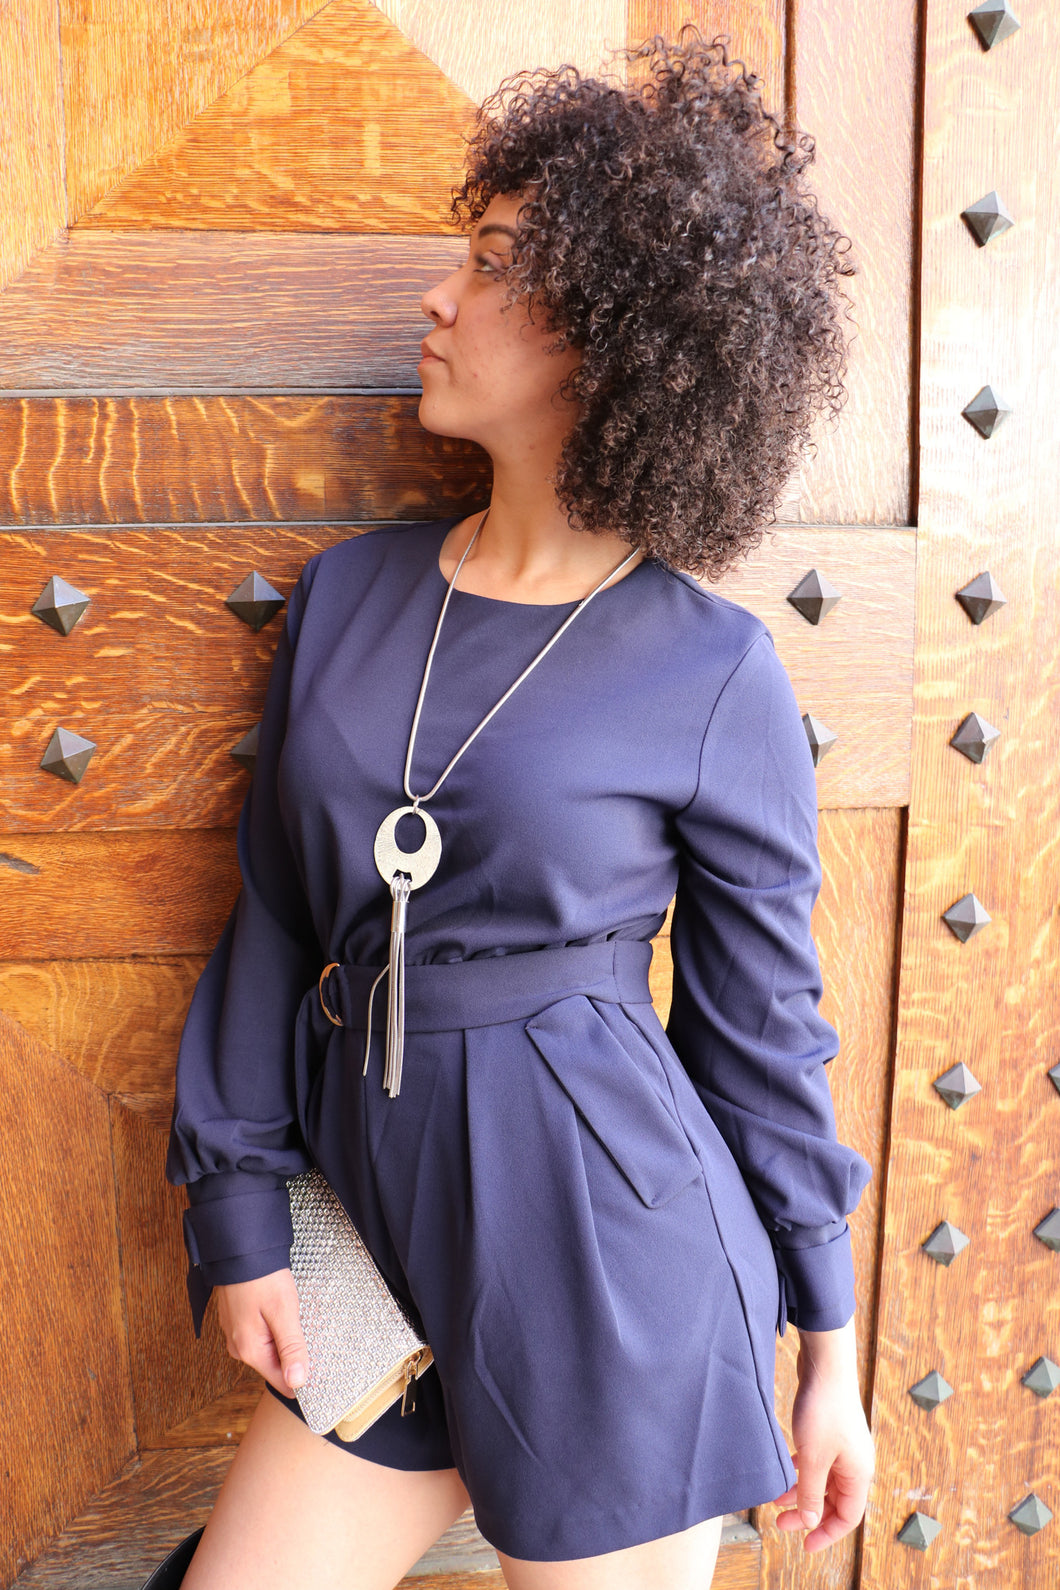 A Unique European Long Sleeve Dress Rumper